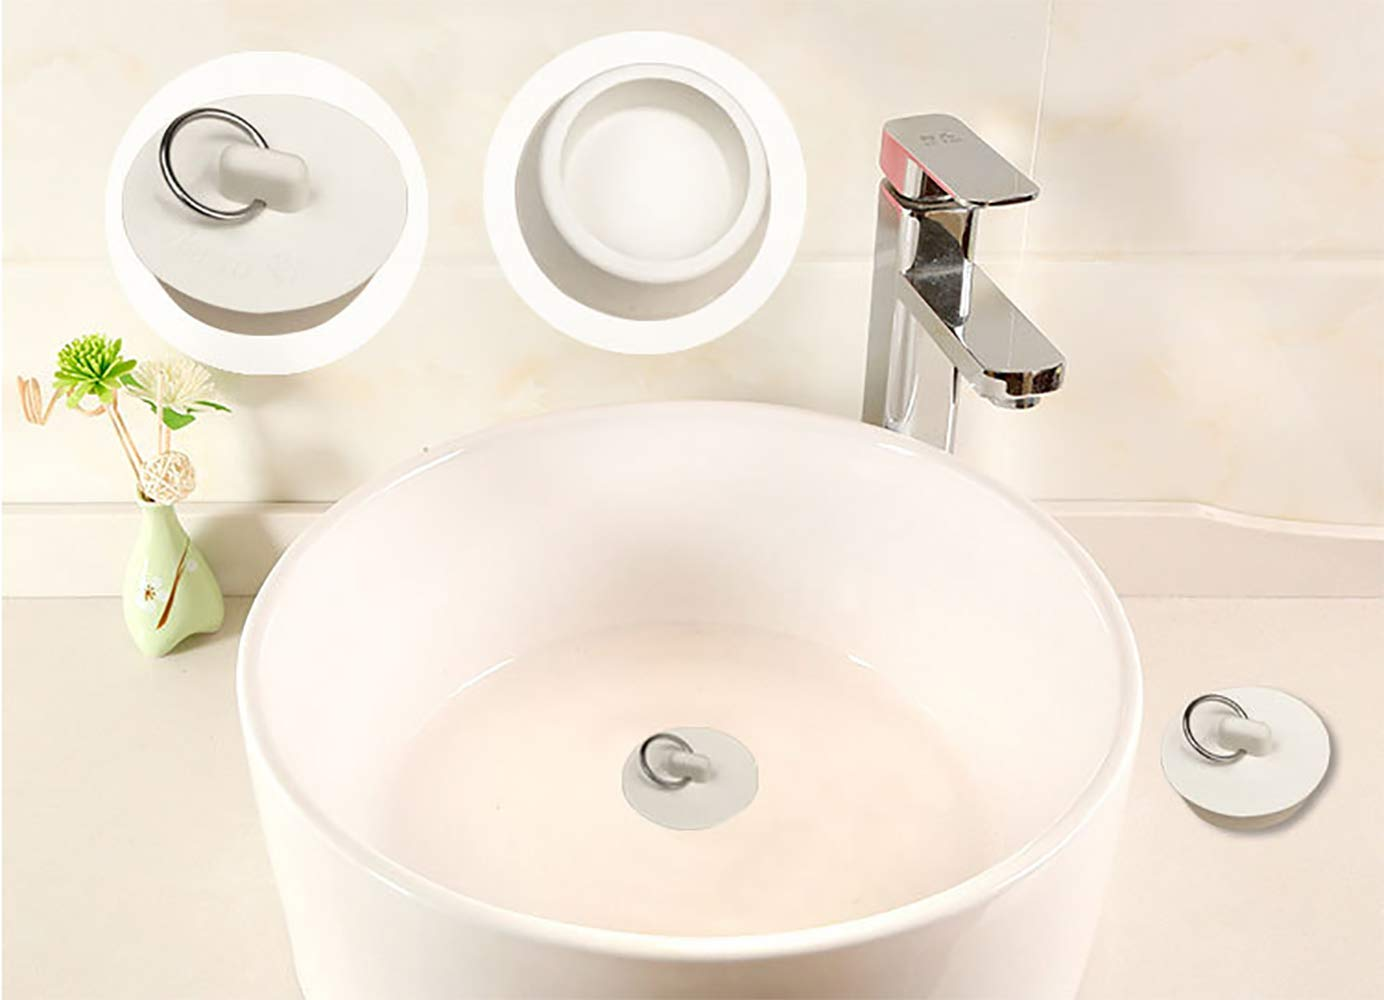 LHKJ Rubber Sink Stopper Set Drain Stopper Plug with Hanging Ring for Bathtub Kitchen and Bathroom 4 Sizes White